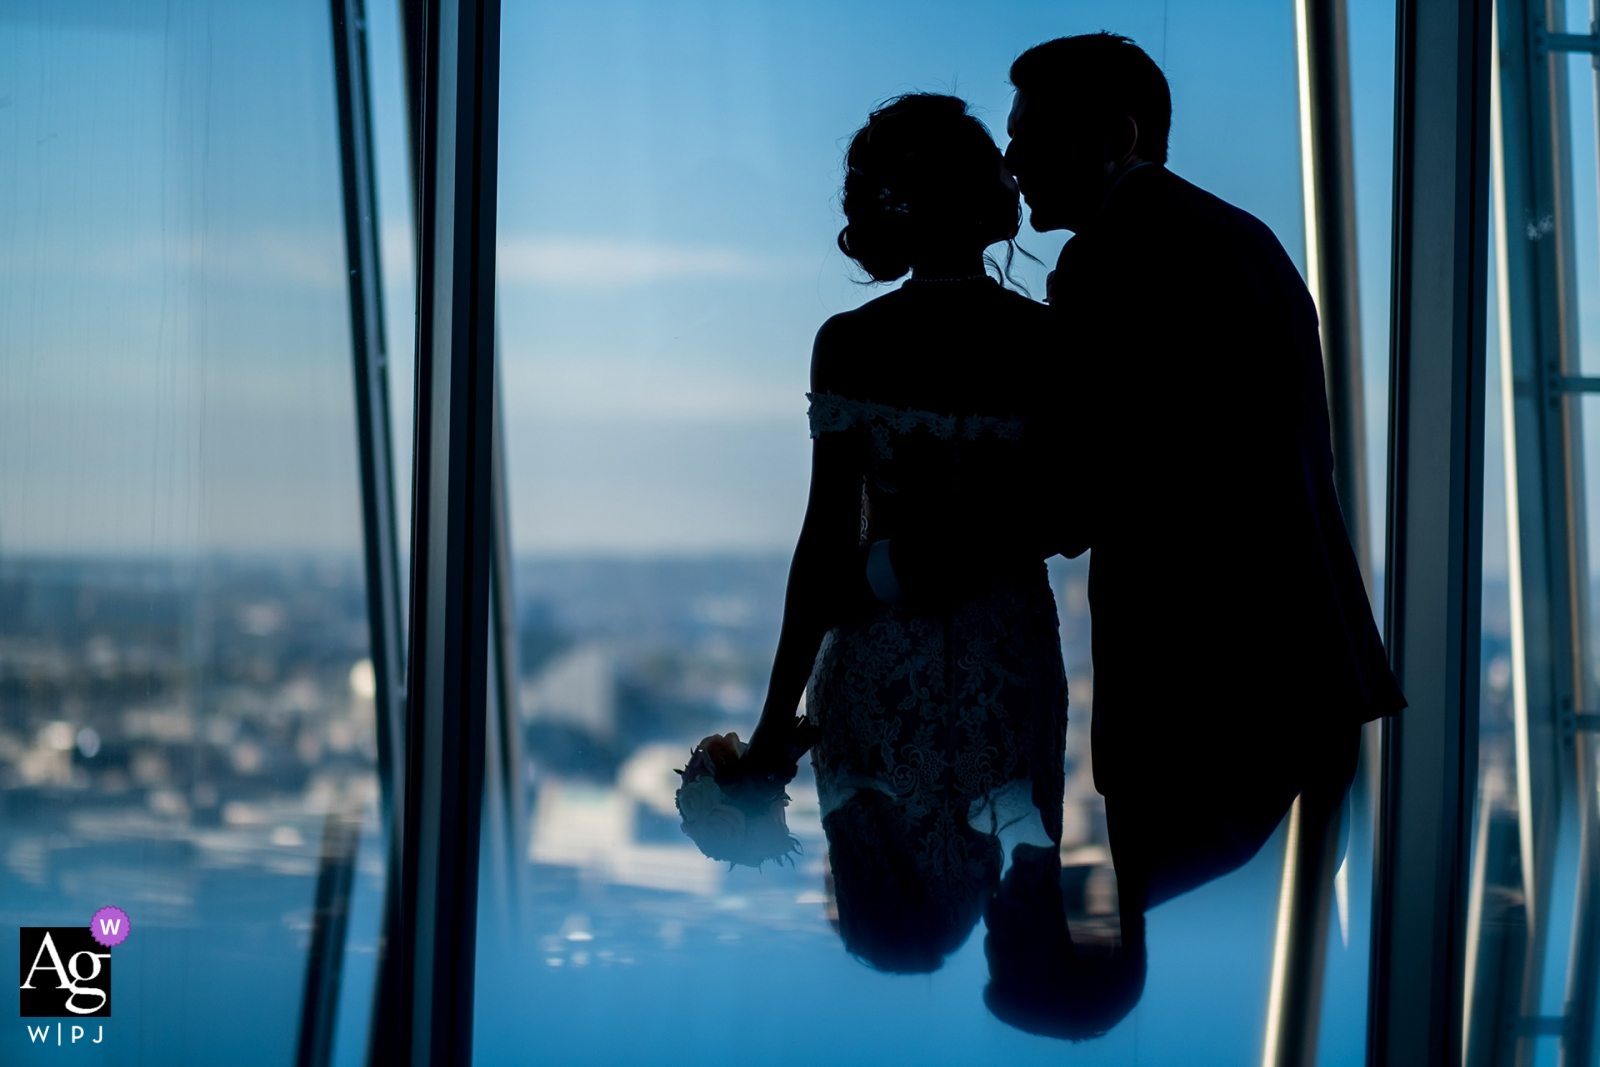 Bedfordshire, England destination wedding reception photograph of bride and groom kissing near window with a view of the city in blue